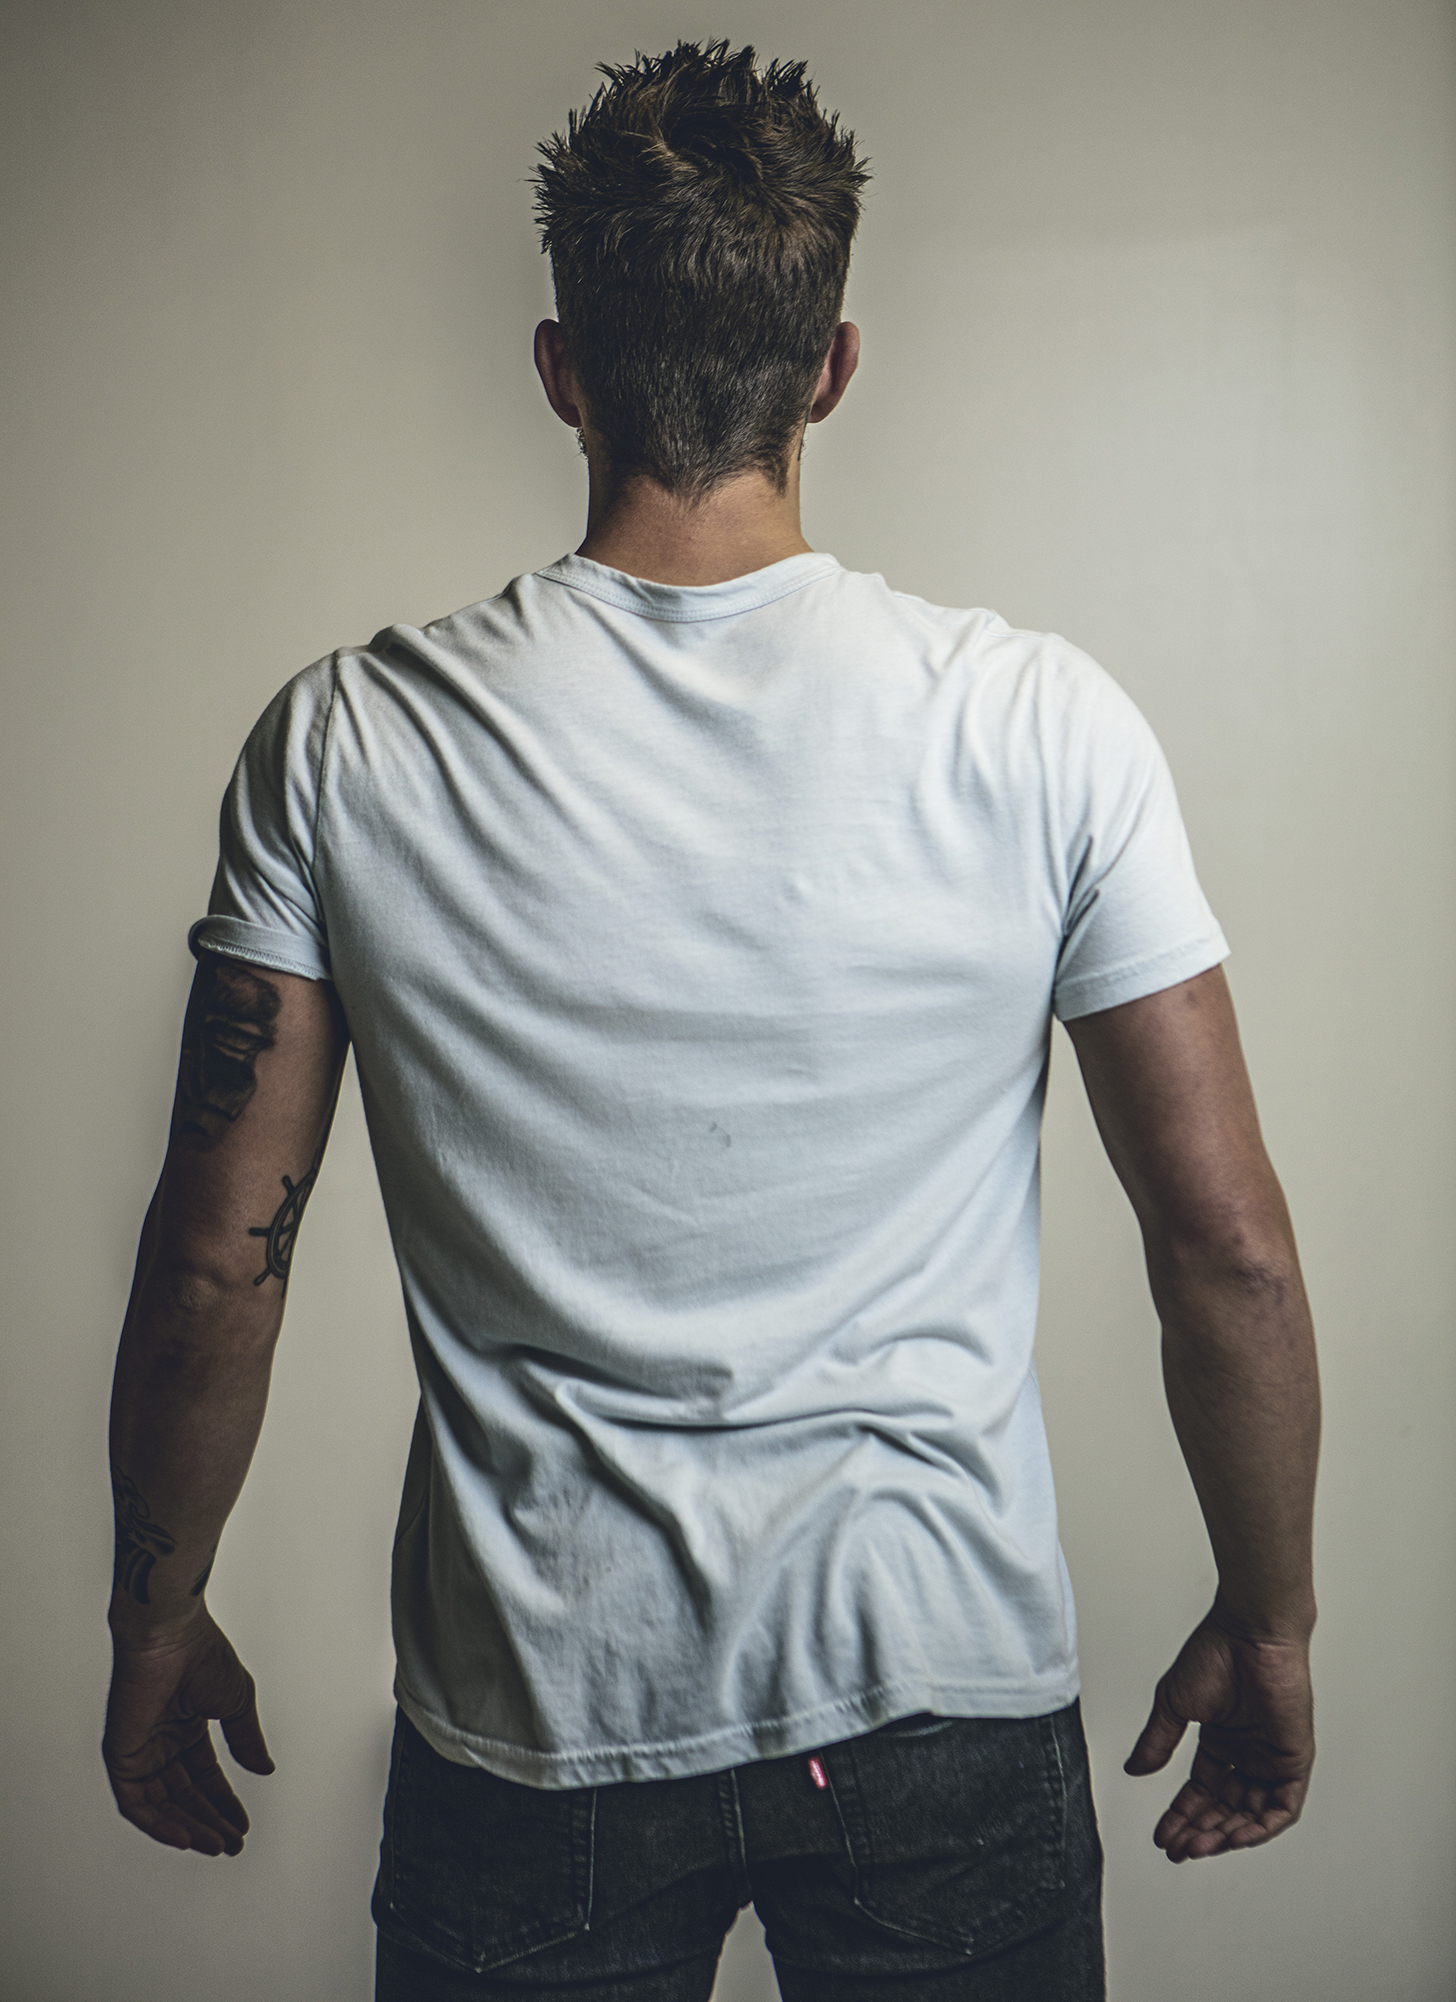 5683-Mens-Reflectons-of-Love-Tee-Back